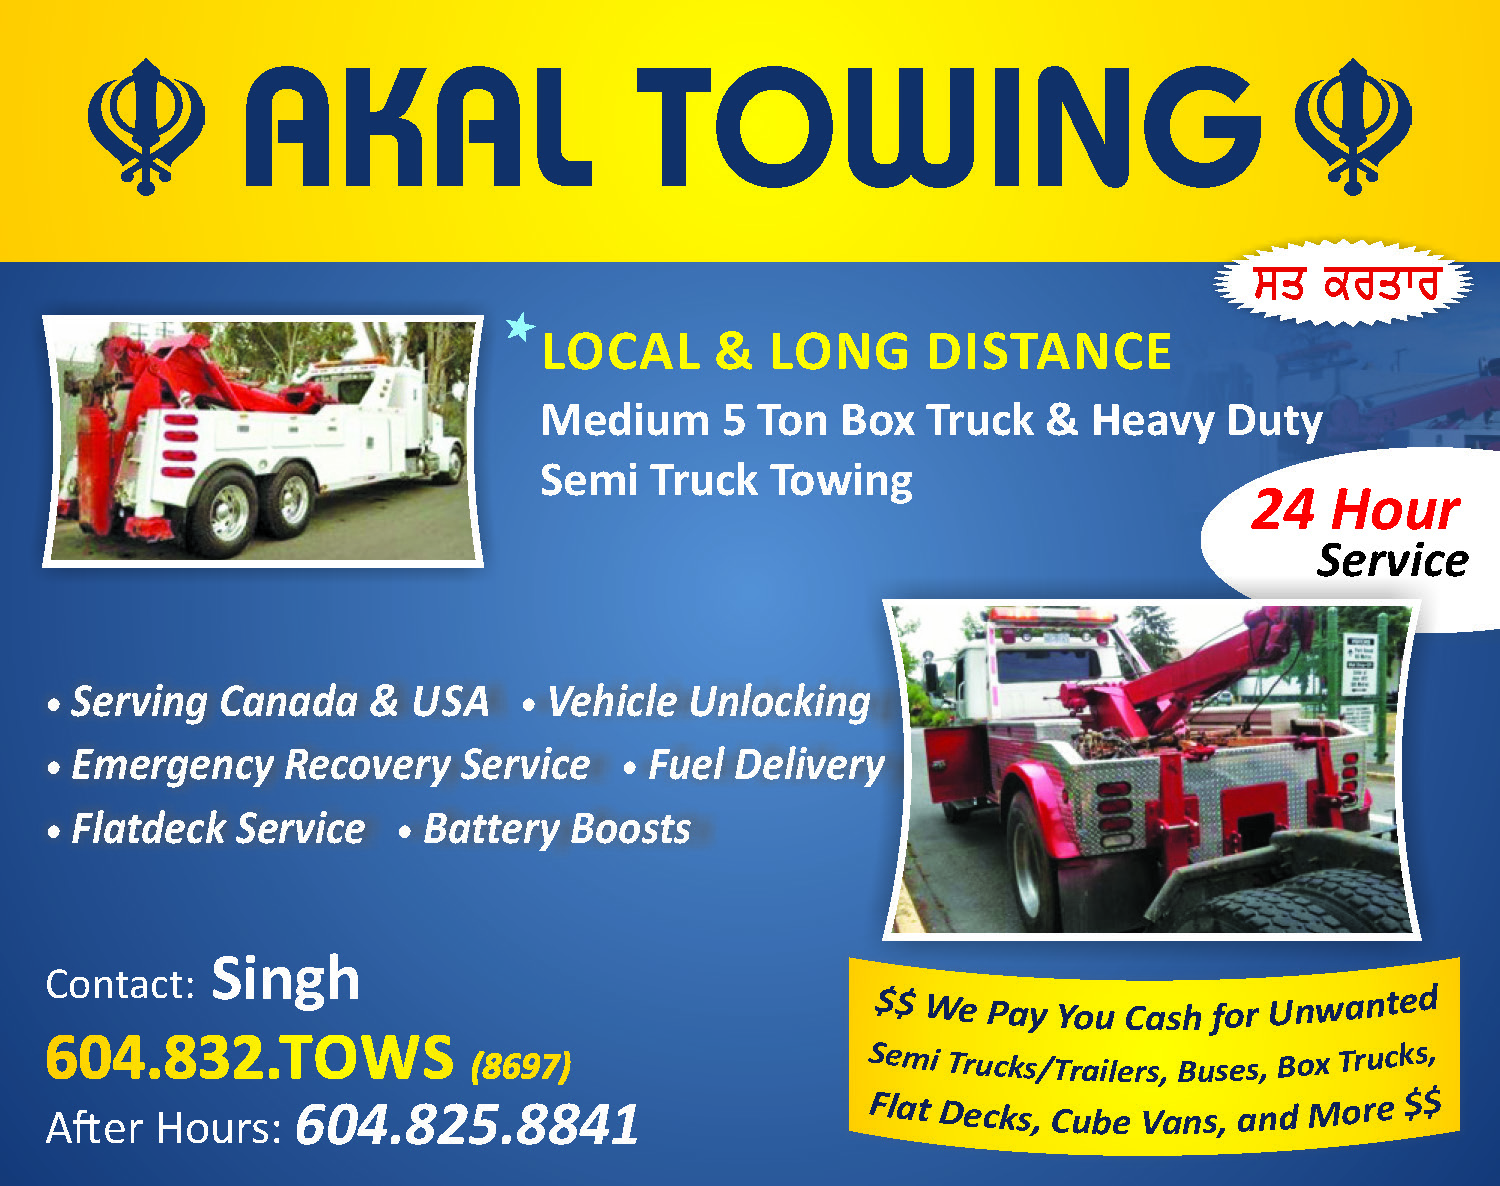 akal-towing-recycling-services-fiCr3J8.jpeg